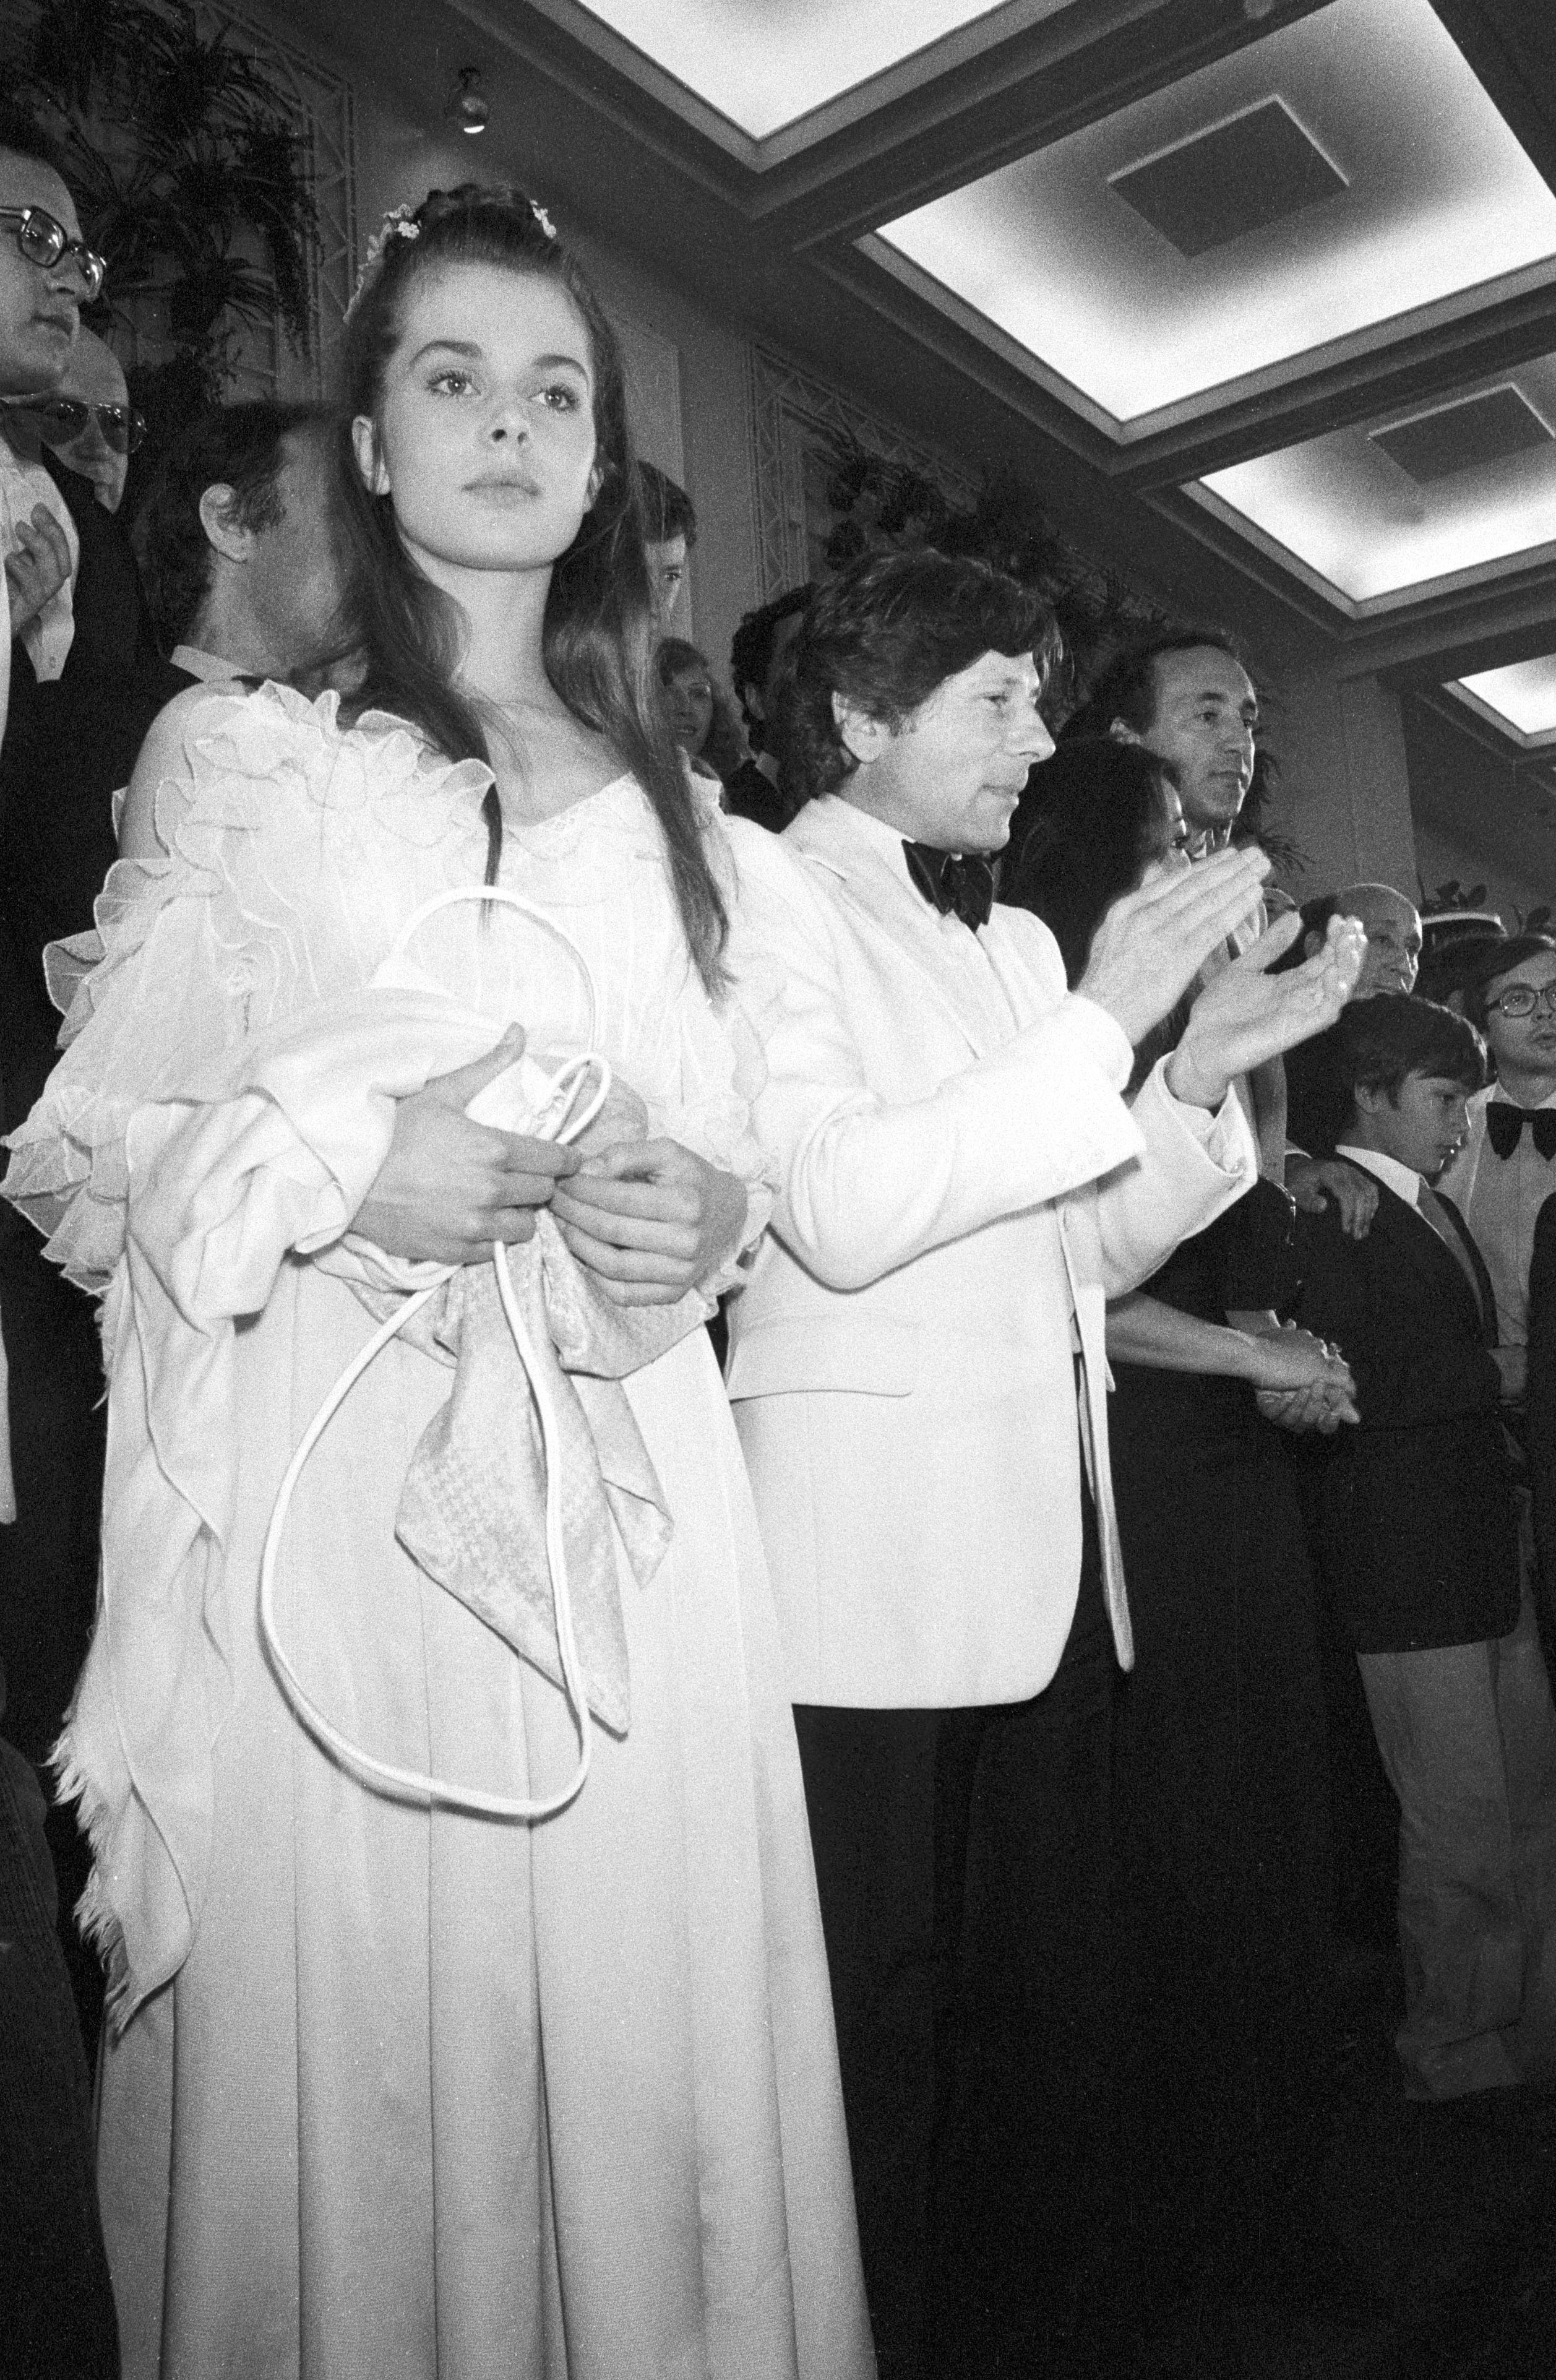 Cannes film festival in 1979